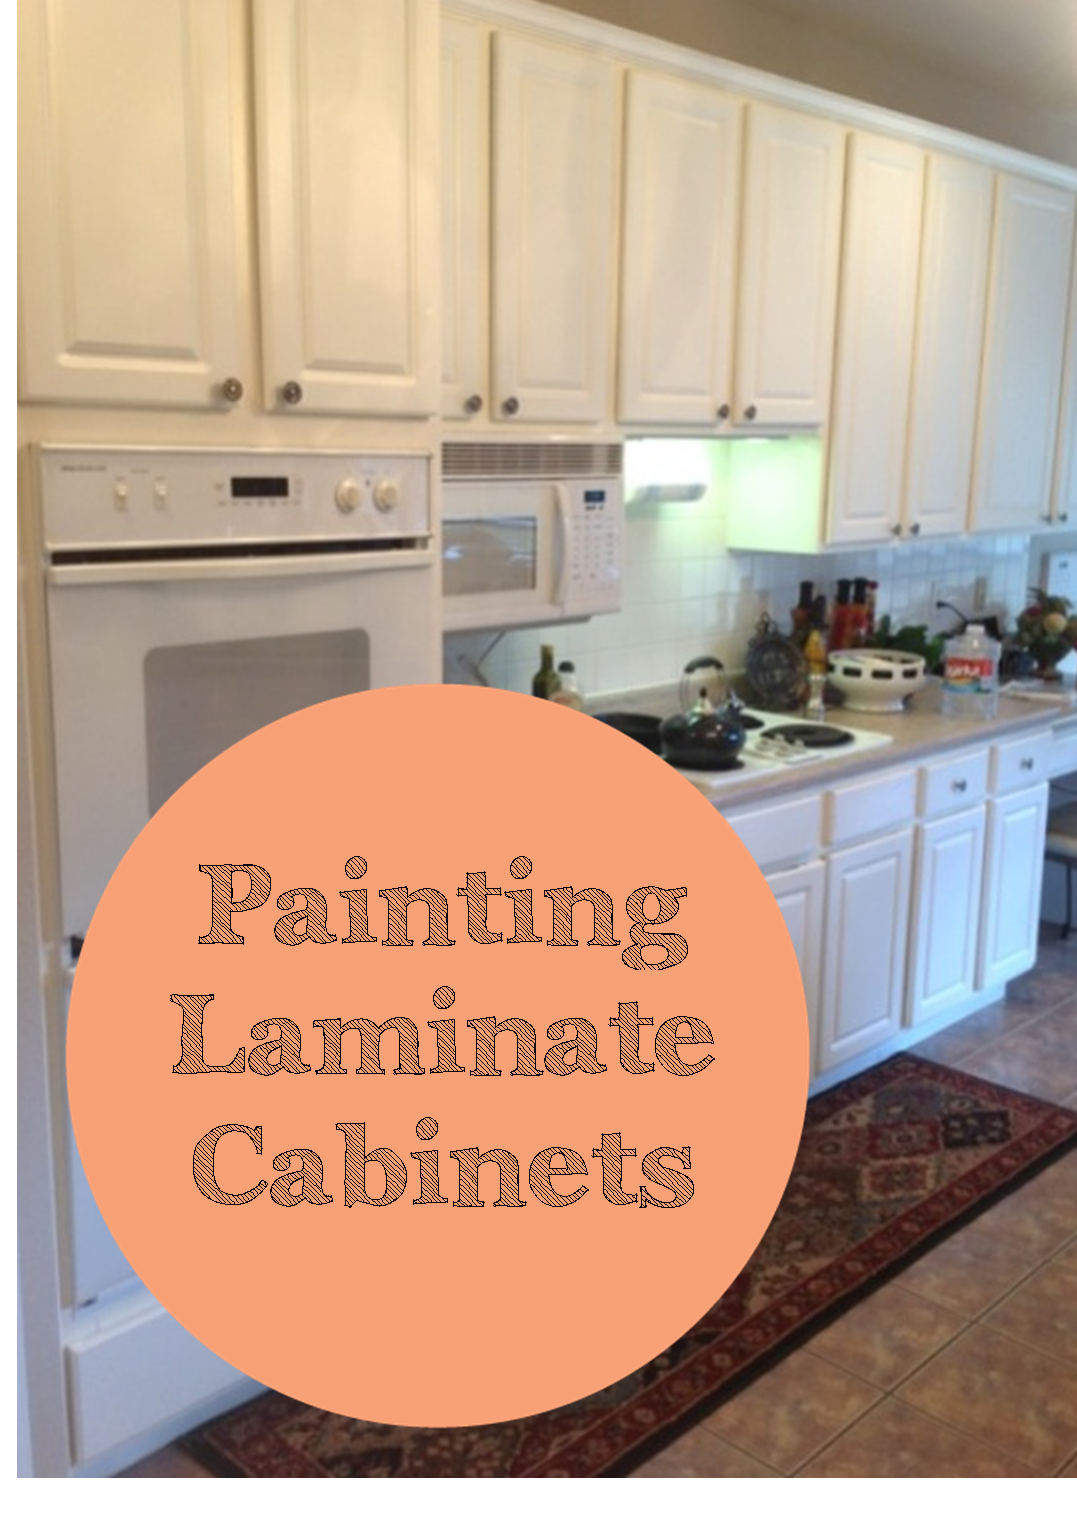 Laminated Cabinets If You Have Laminated Cabinets You Know It And I M Sure You Kno Laminate Kitchen Cabinets Laminate Cabinets Painting Laminate Cabinets